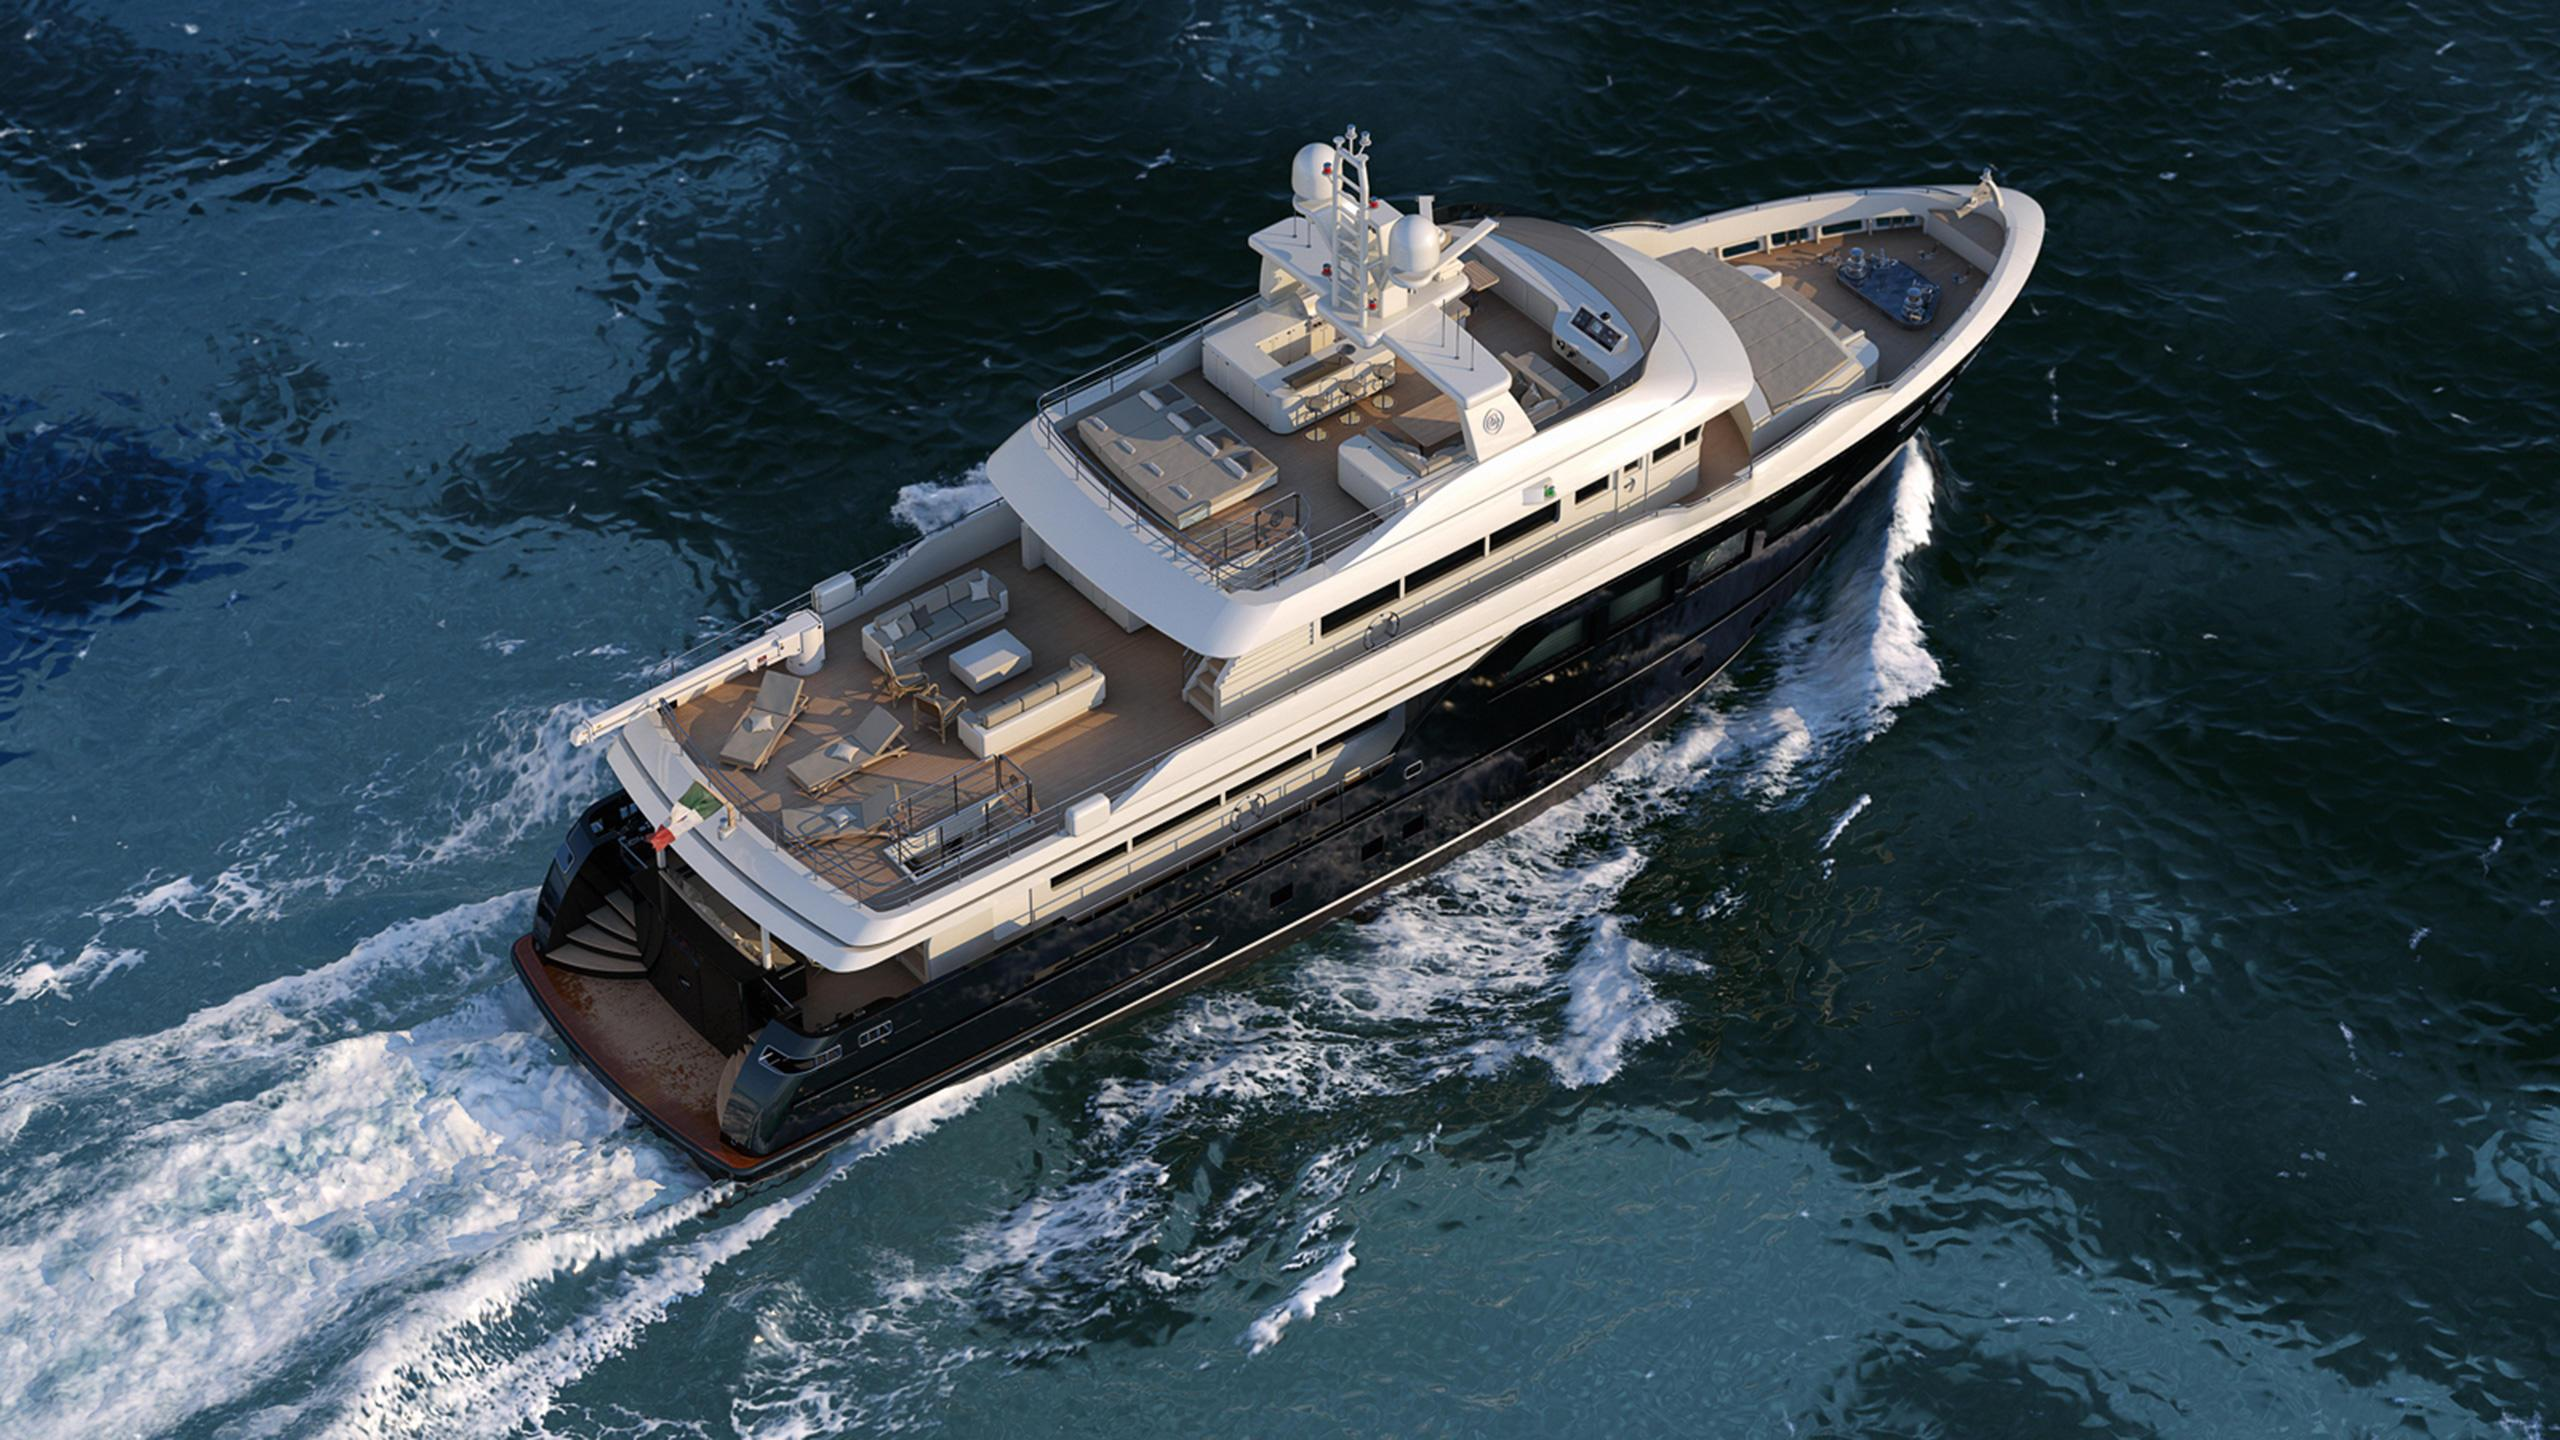 storm-motor-yacht-cantiere-dell-marche-darwin-107-2015-33m-aerial